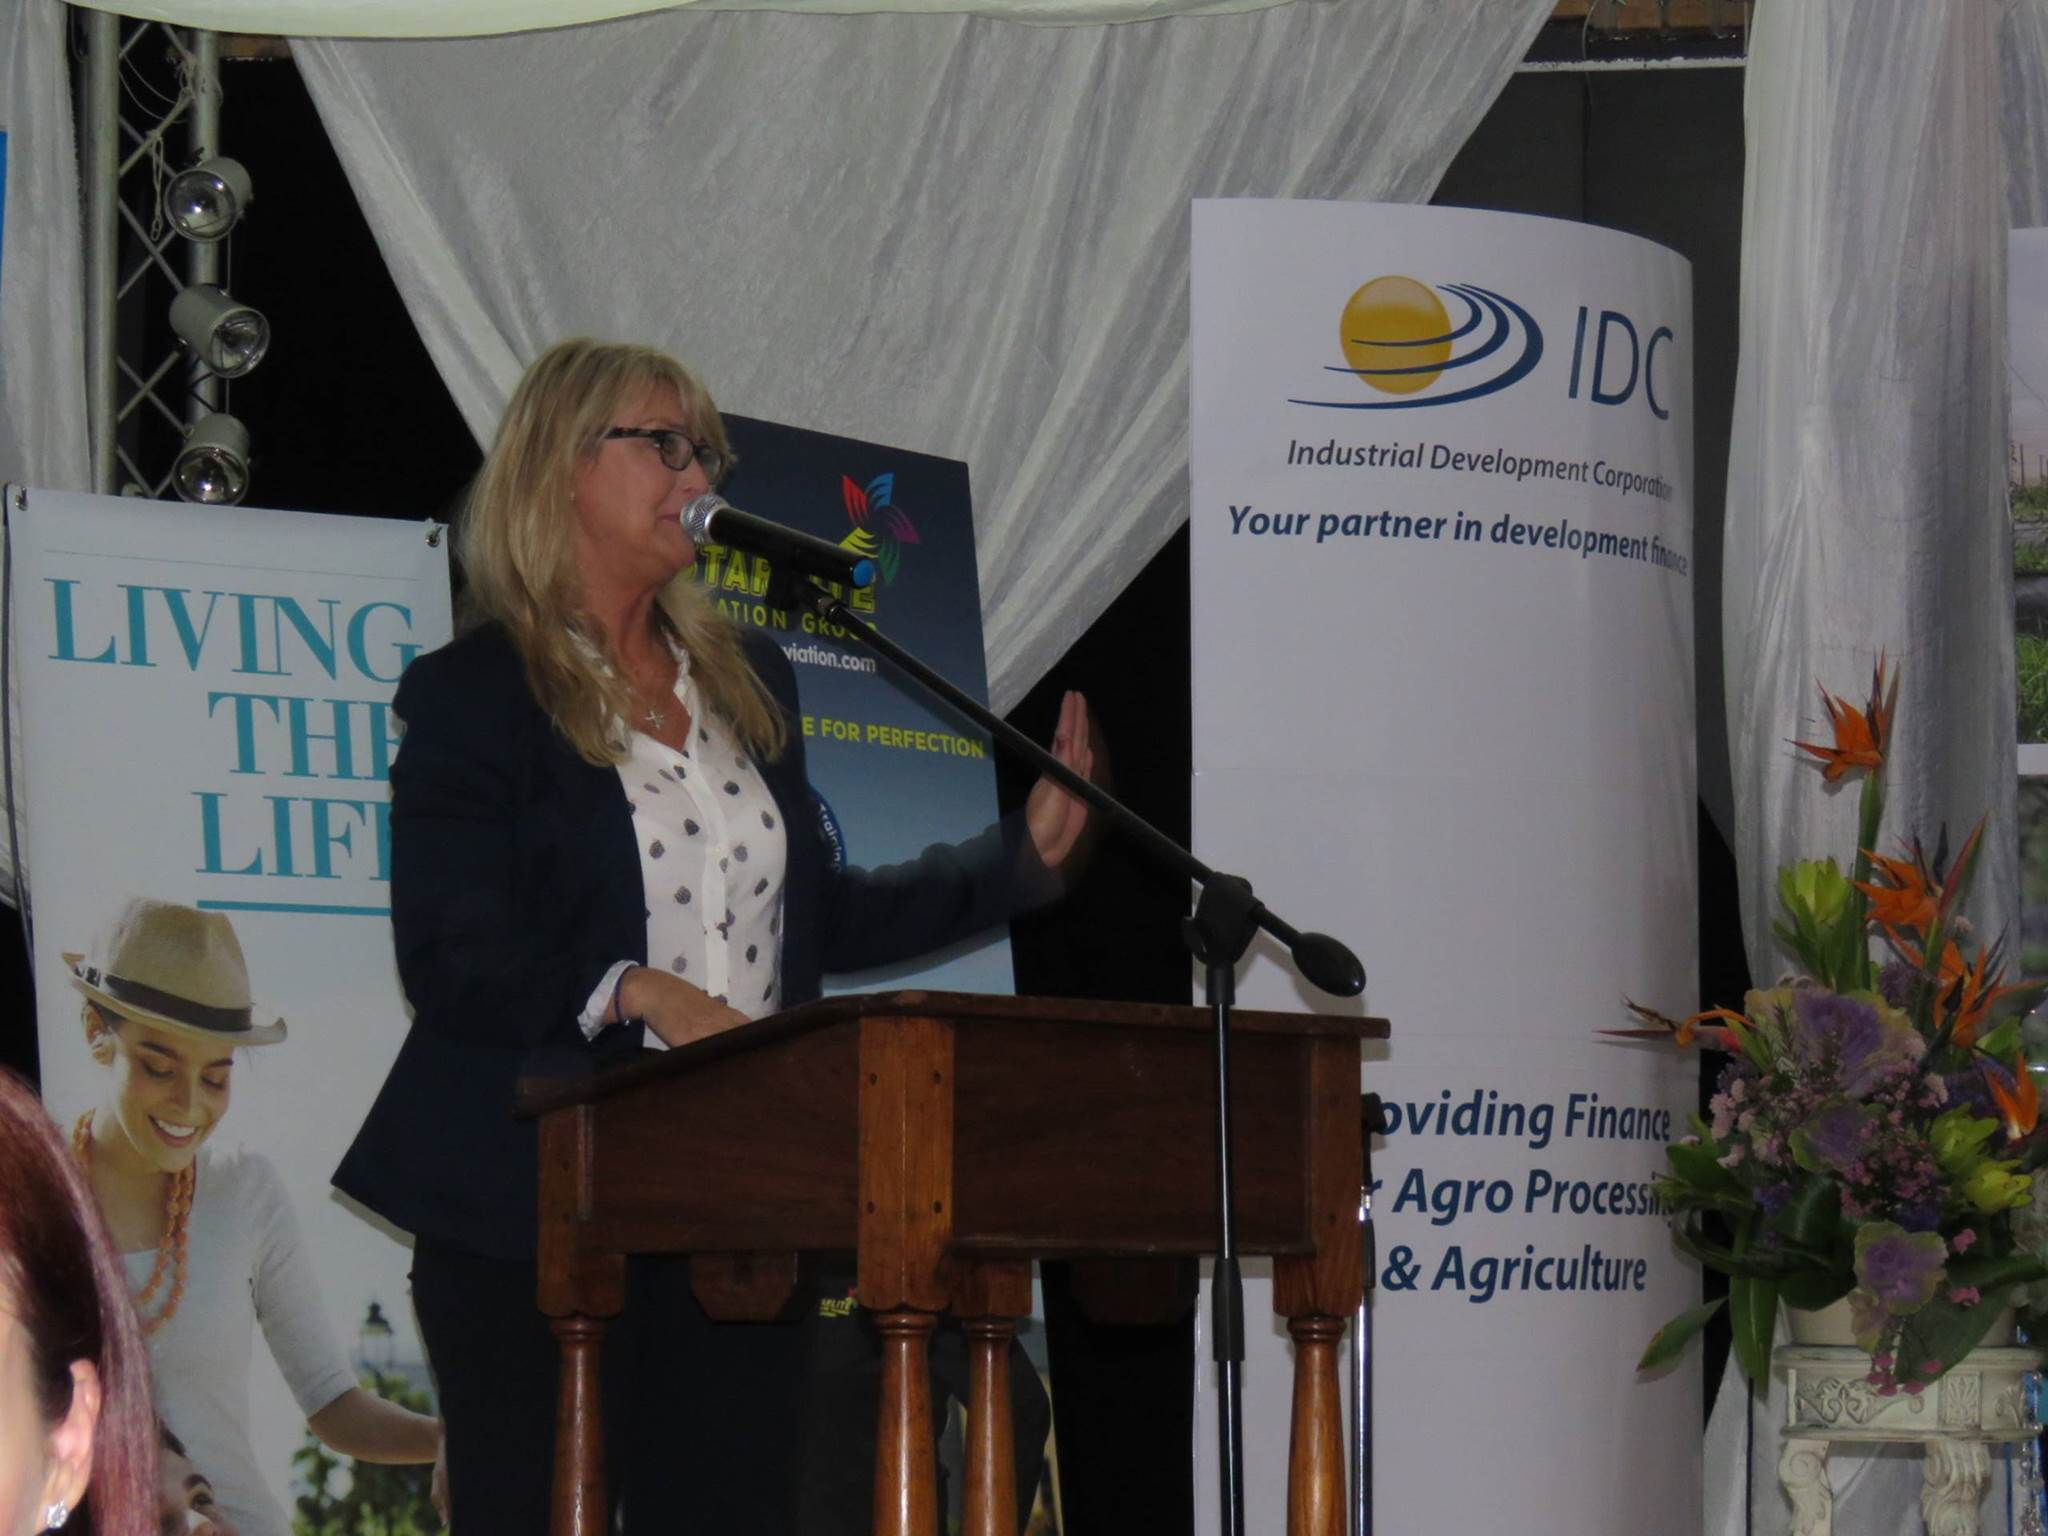 idc presentation mossel bay chamber economic development conference